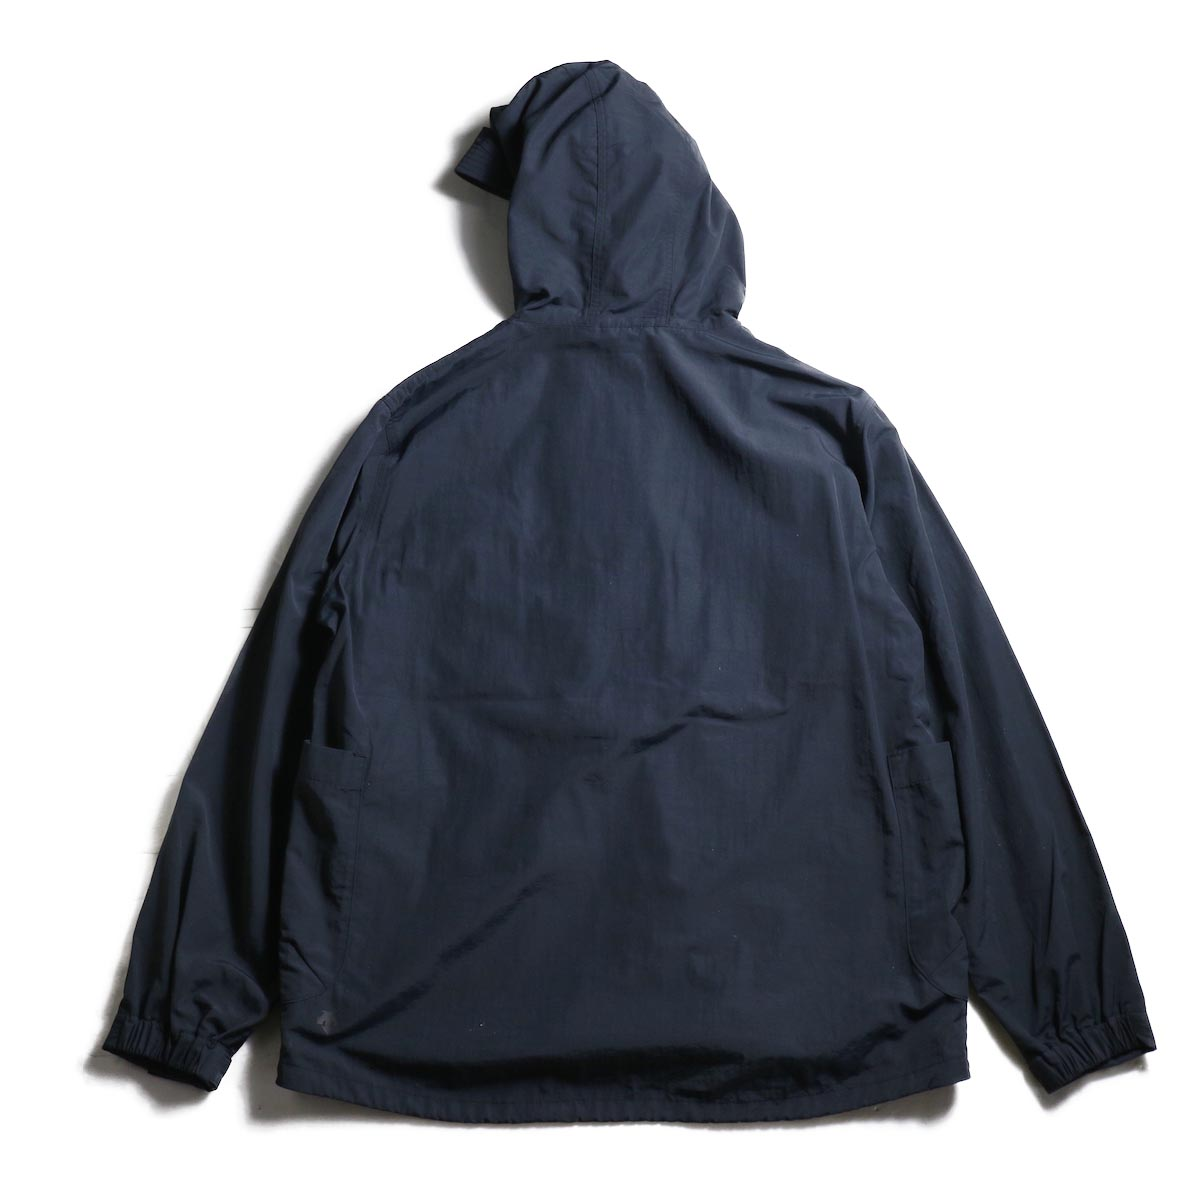 DESCENTE ddd /  PULLOVER JACKET (Black)背面